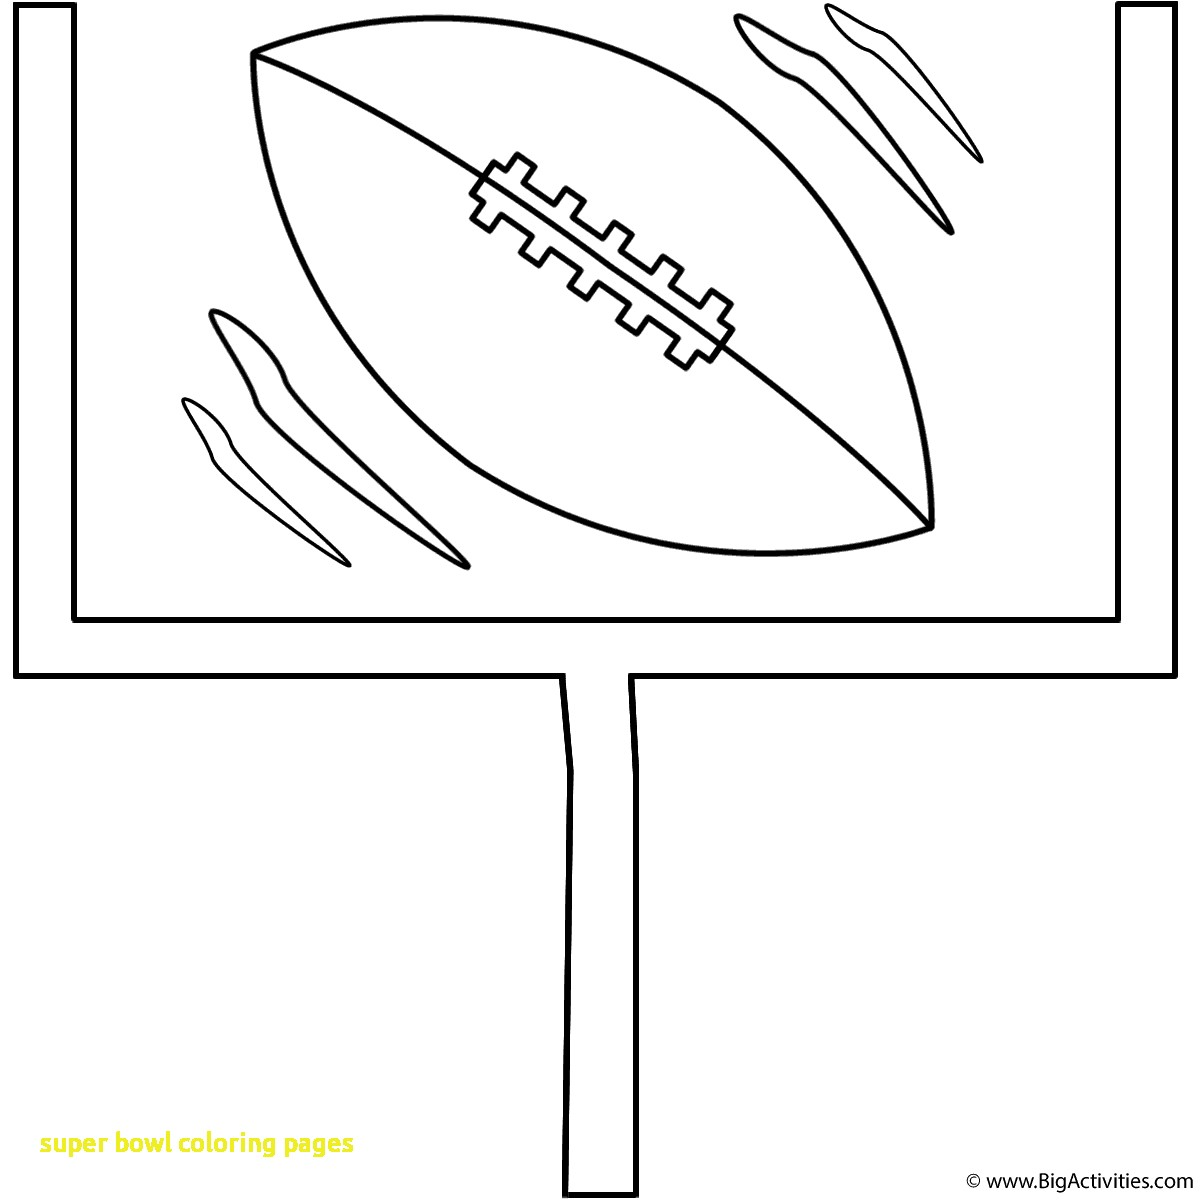 1200x1200 Super Bowl Coloring Pages With Football With Goal Post Coloring